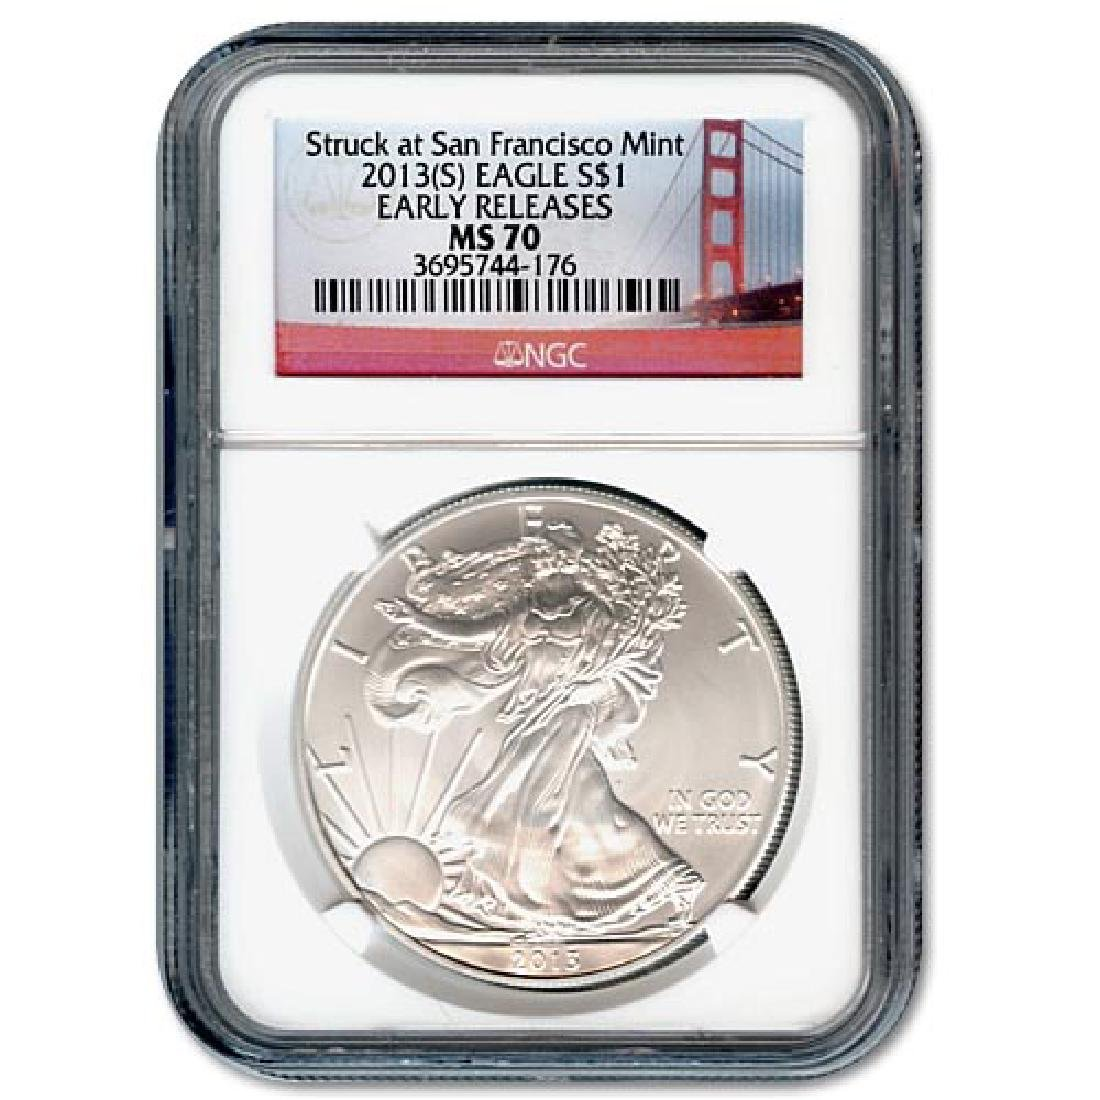 Certified Uncirculated Silver Eagle 2013(S) (Struck at